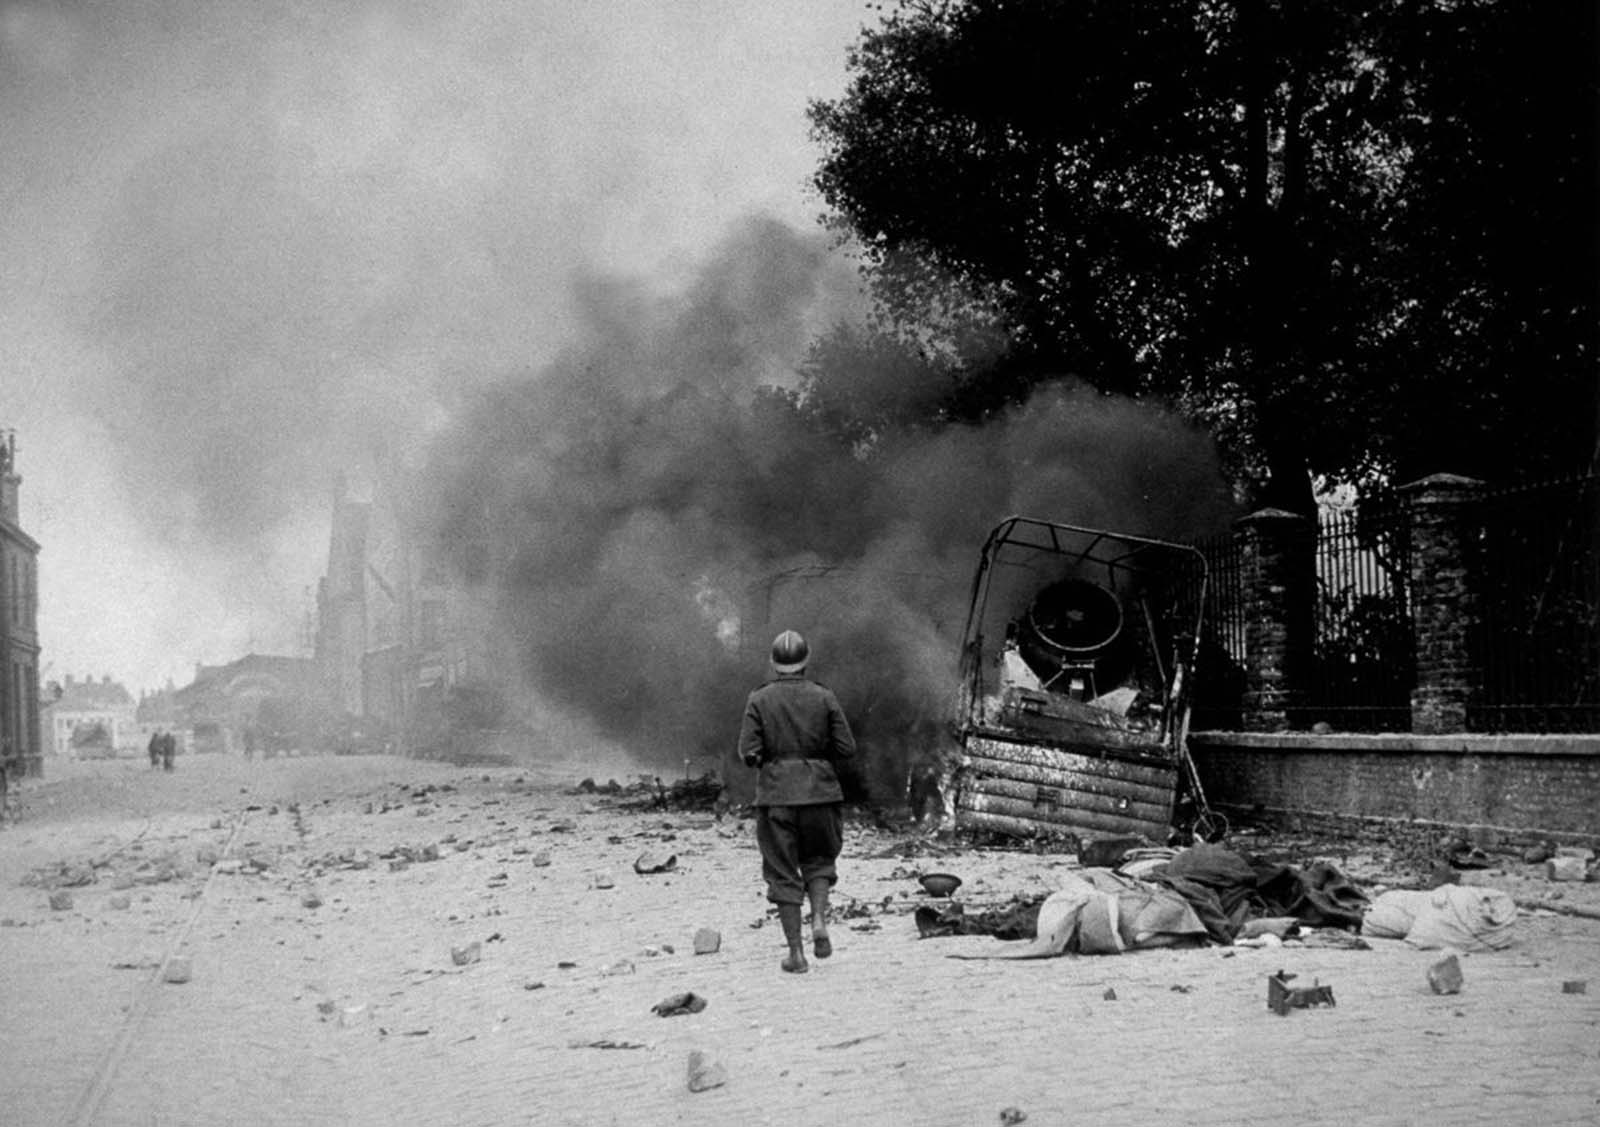 The town of Dunkirk while under bombardment.